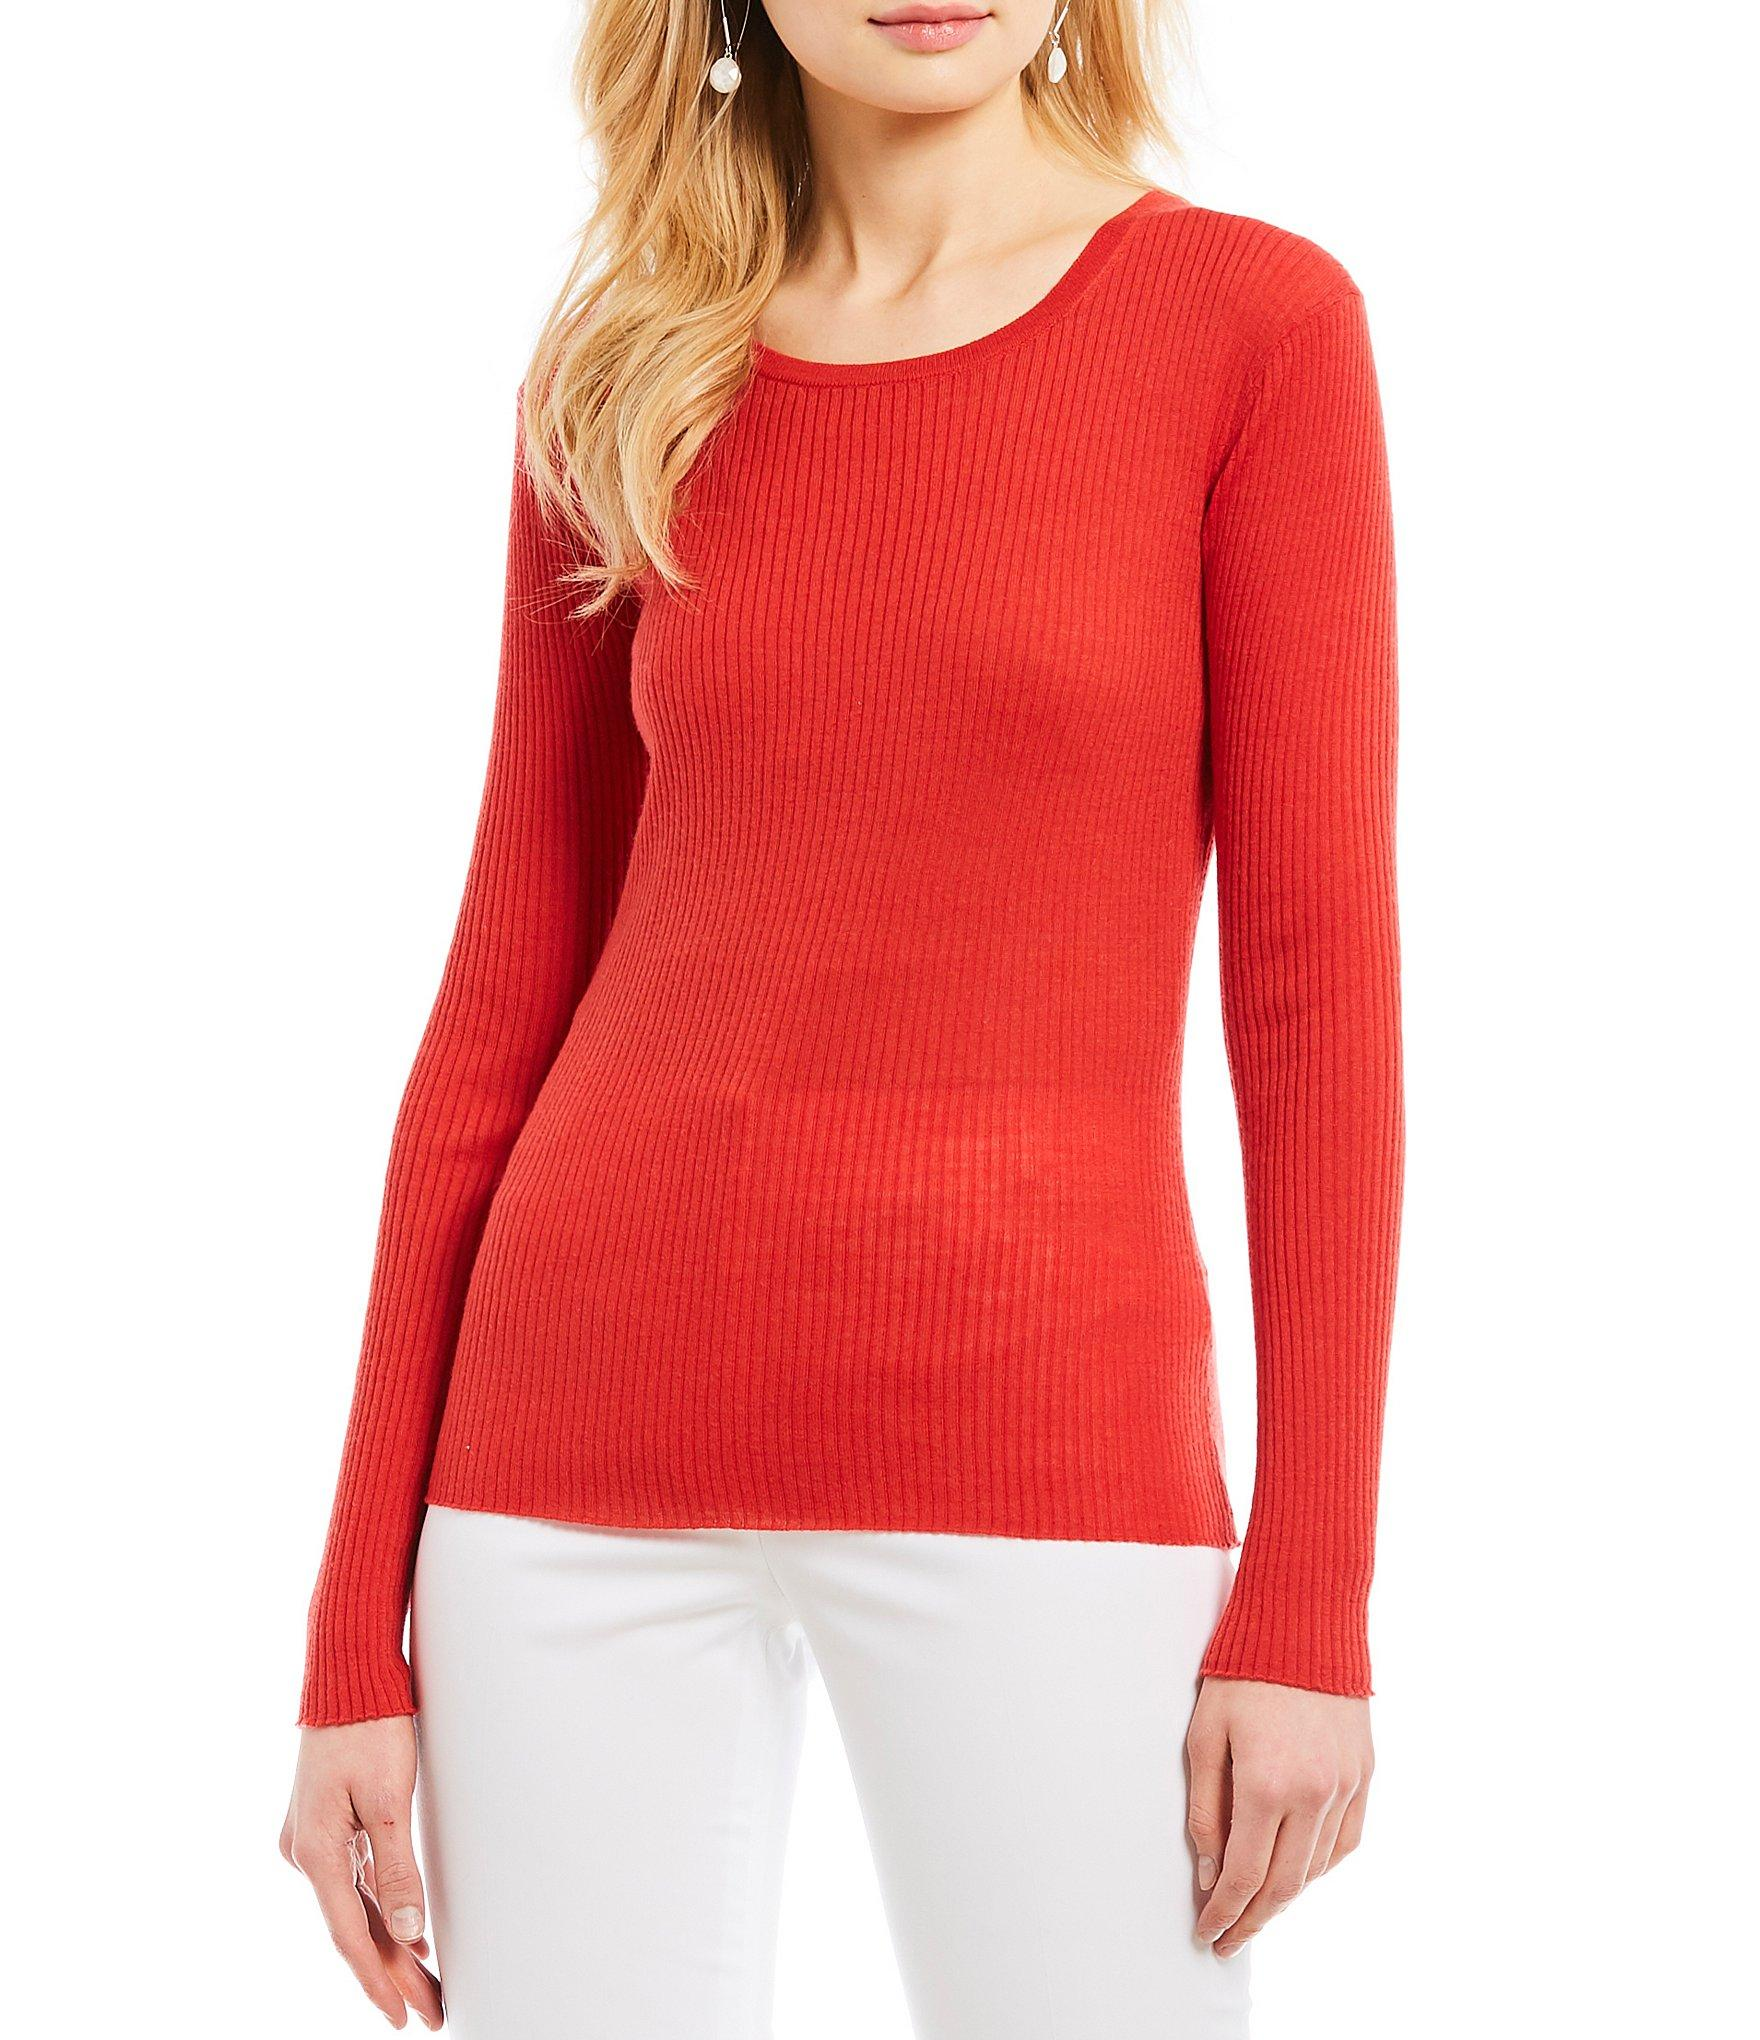 7c96a2005a4 Lyst - Antonio Melani Stephanie Long Sleeve Ribbed Knit Top in Red